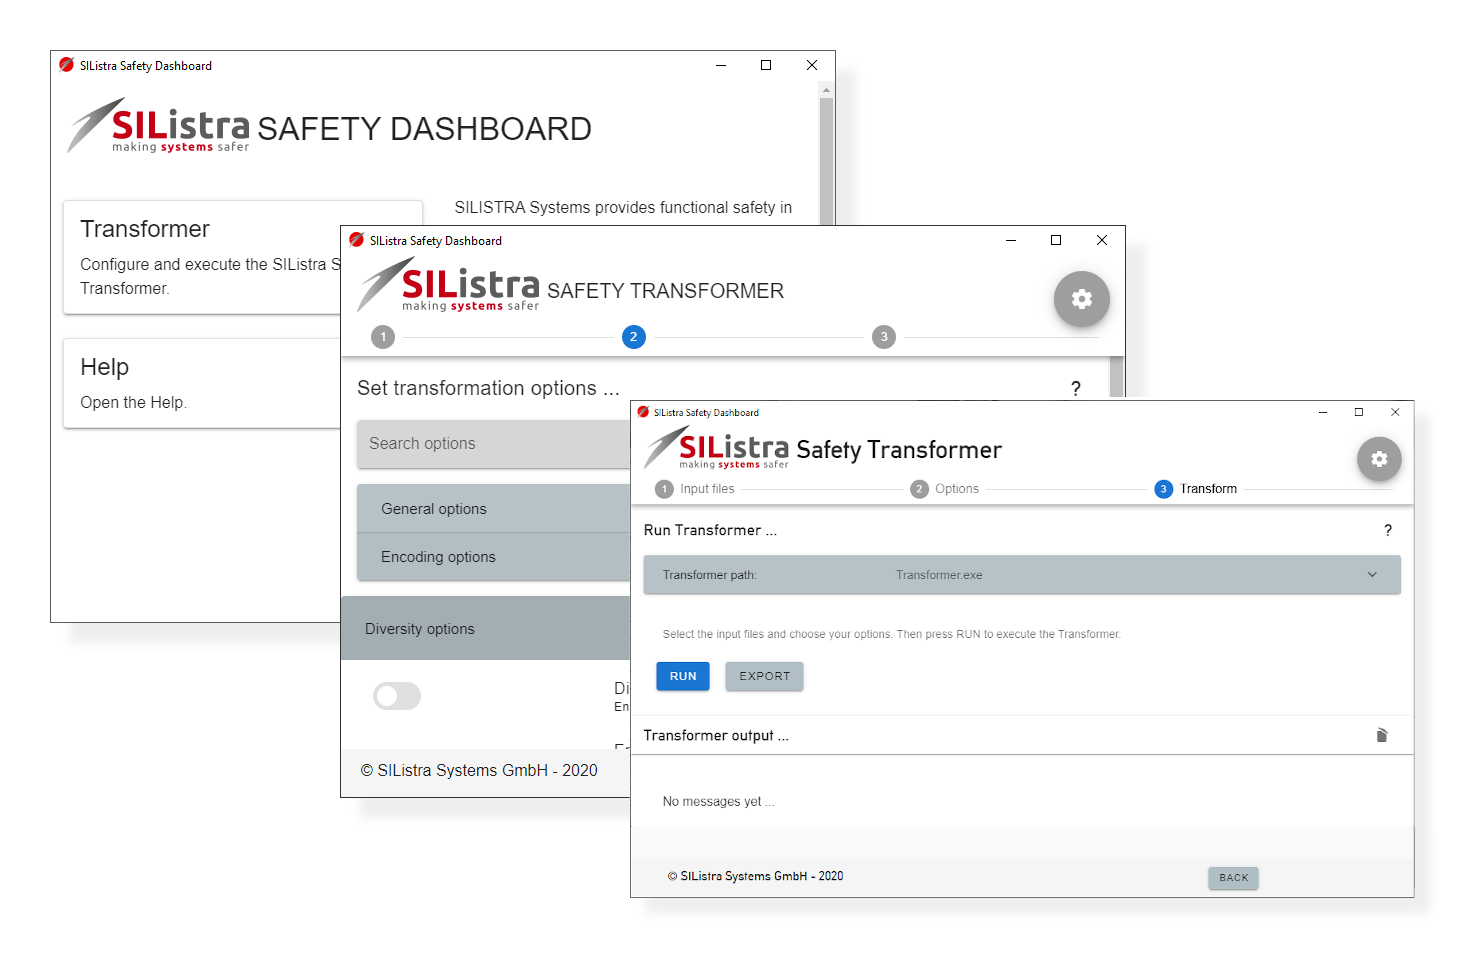 SIListra Safety Dashboard